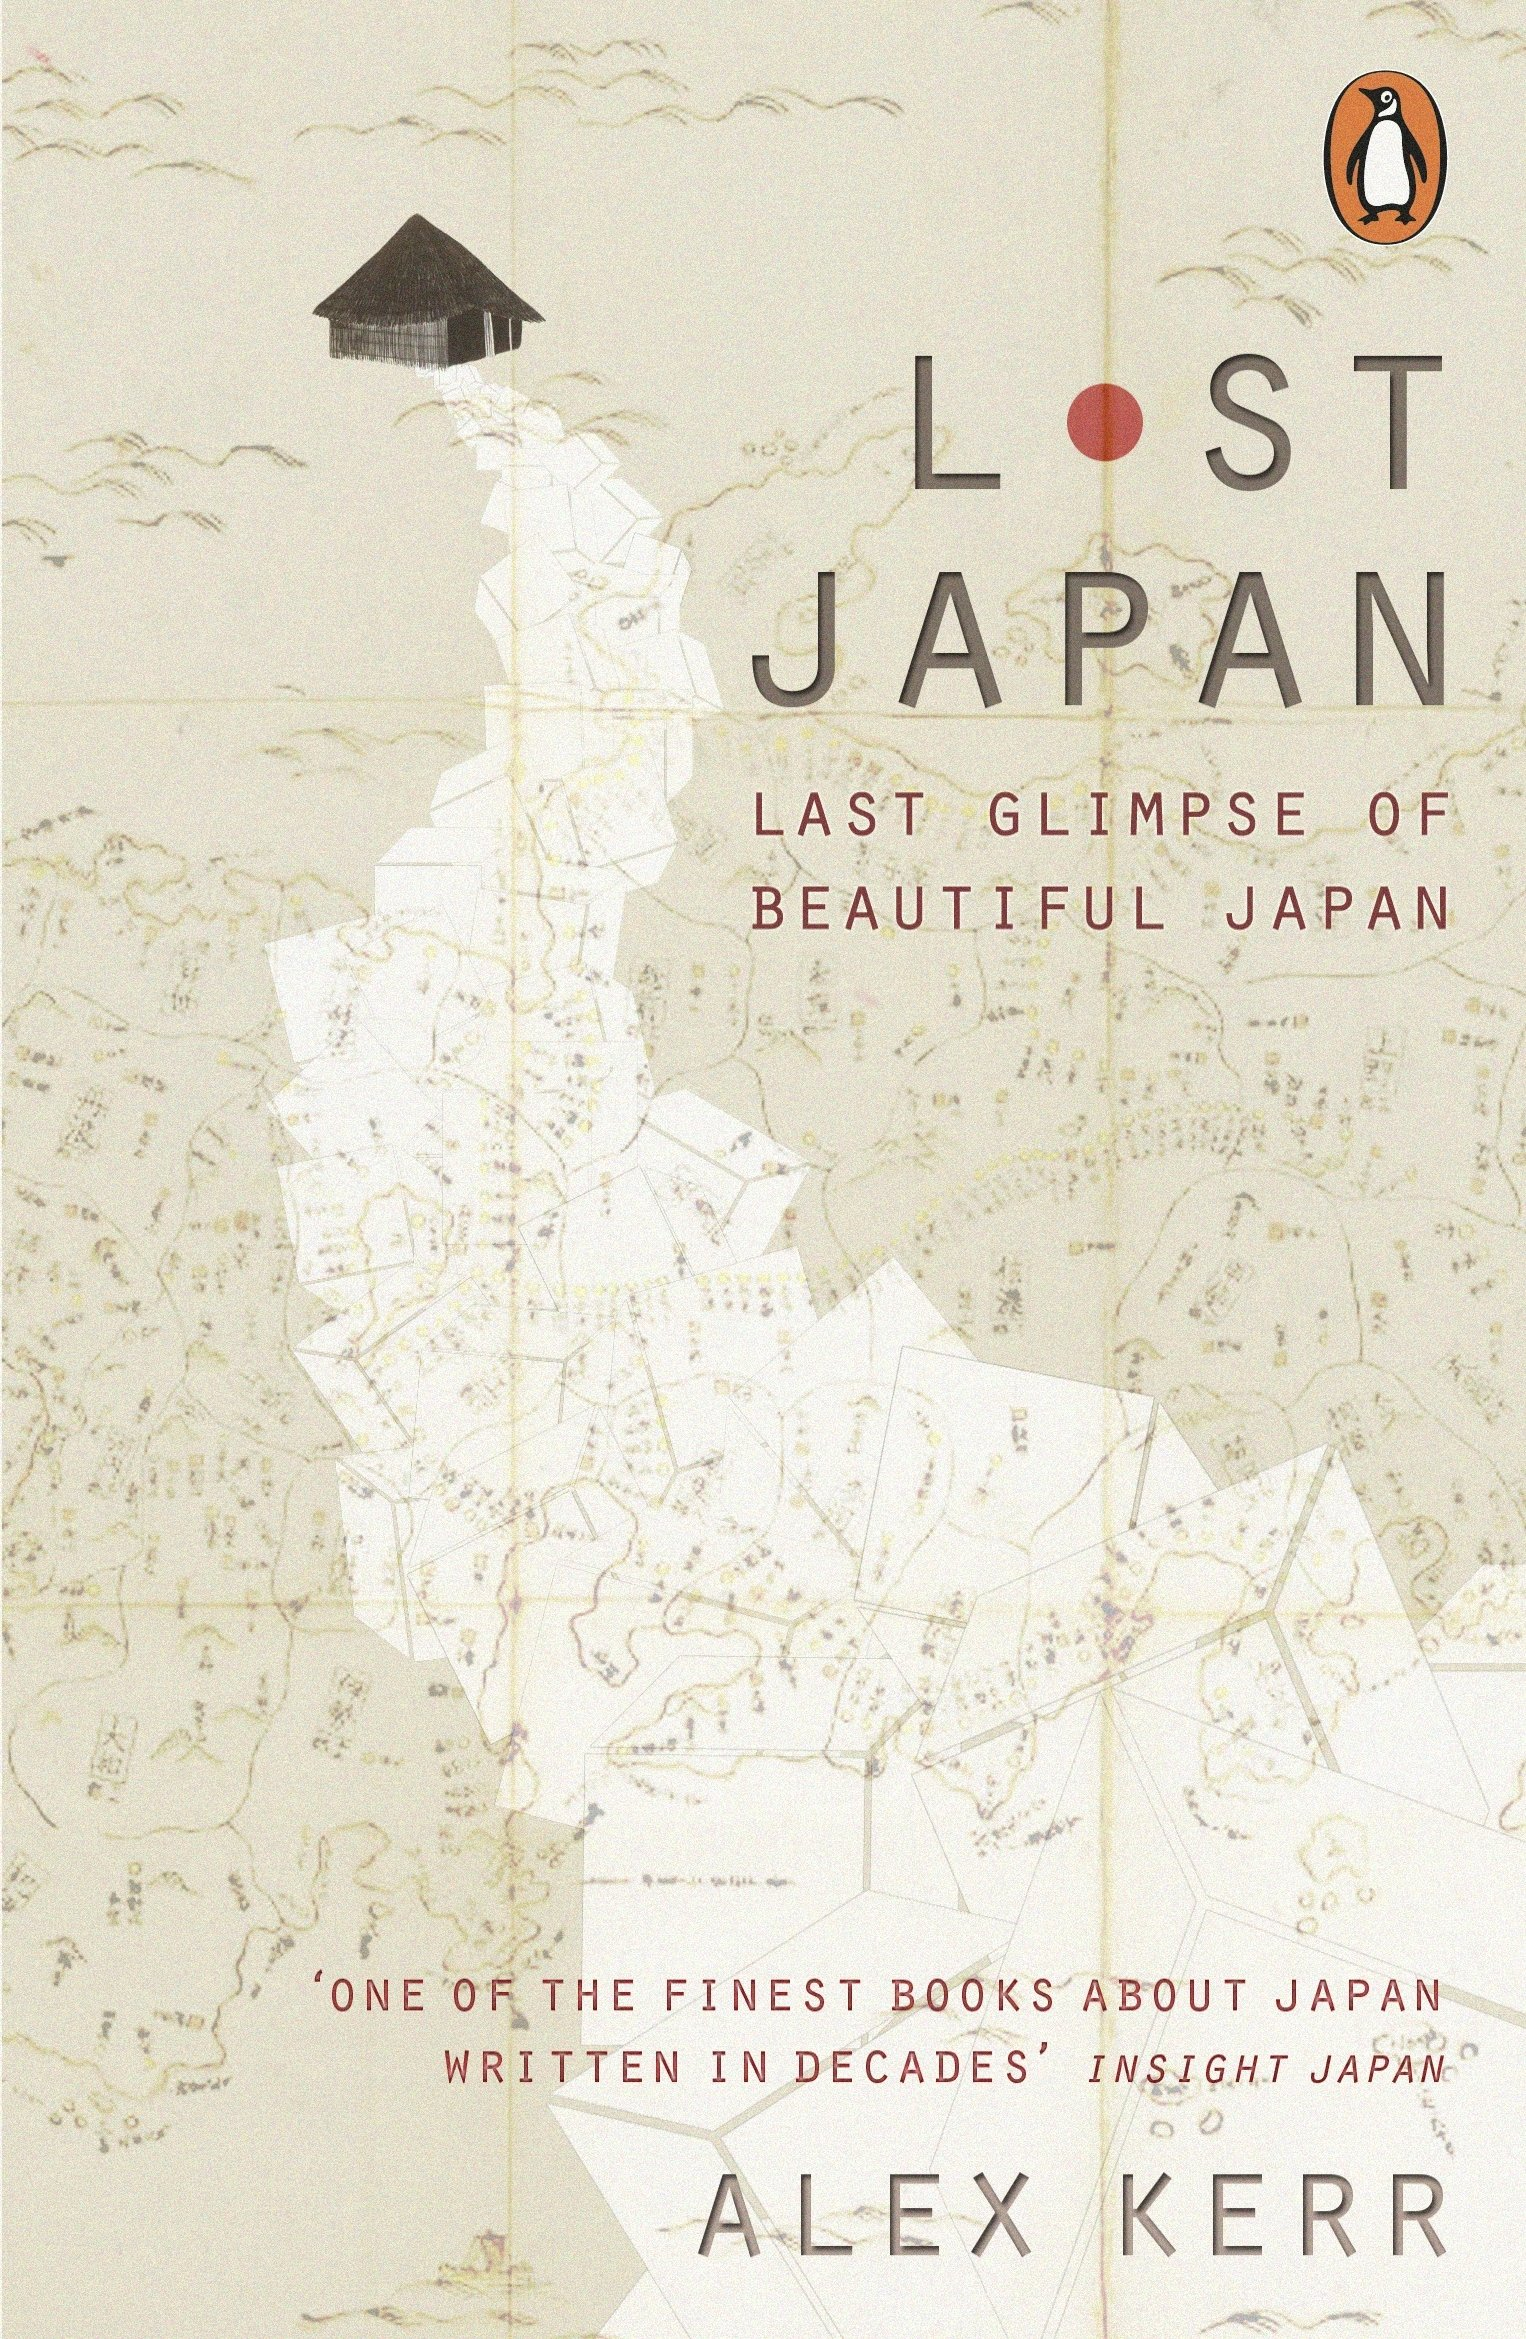 7 Japan Travel Books To Inspire Future Trips Lost Japan Last Glimpse Of Beautiful Japan